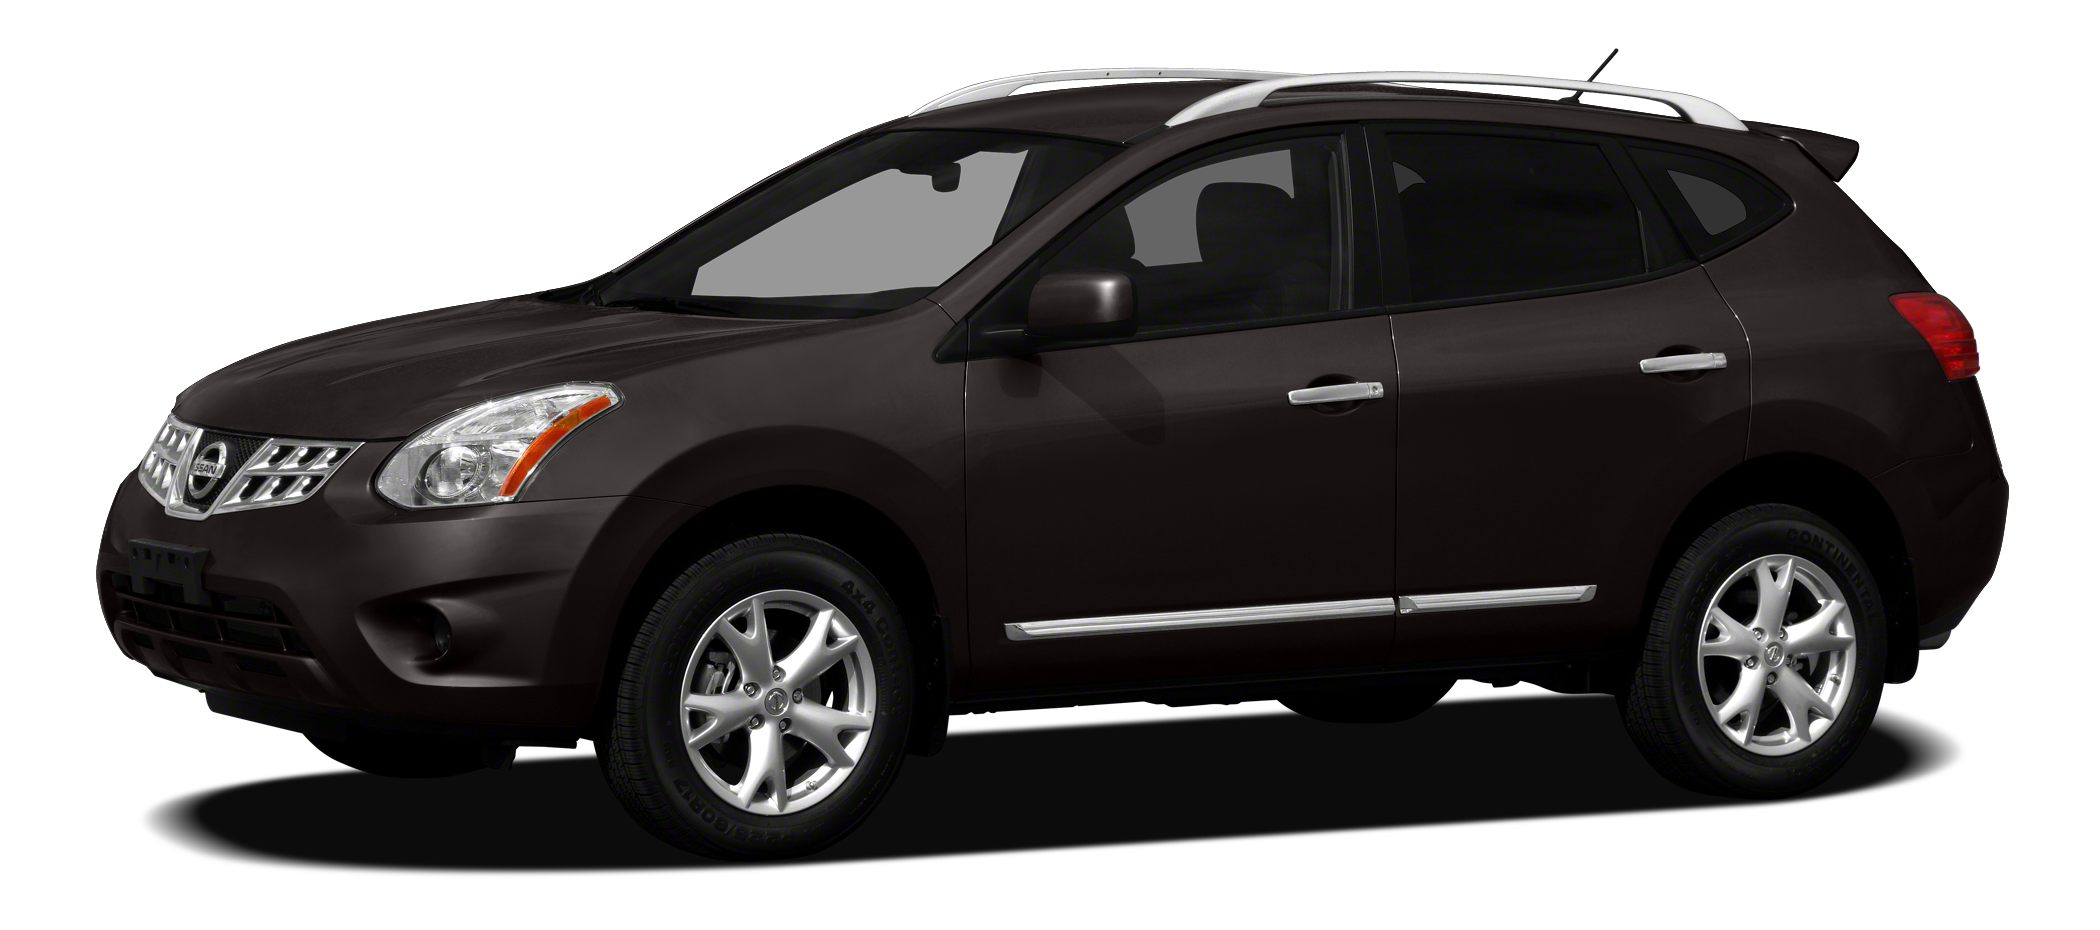 2012 Nissan Rogue SV Visit Best Auto Group online at bronxbestautocom to see more pictures of thi